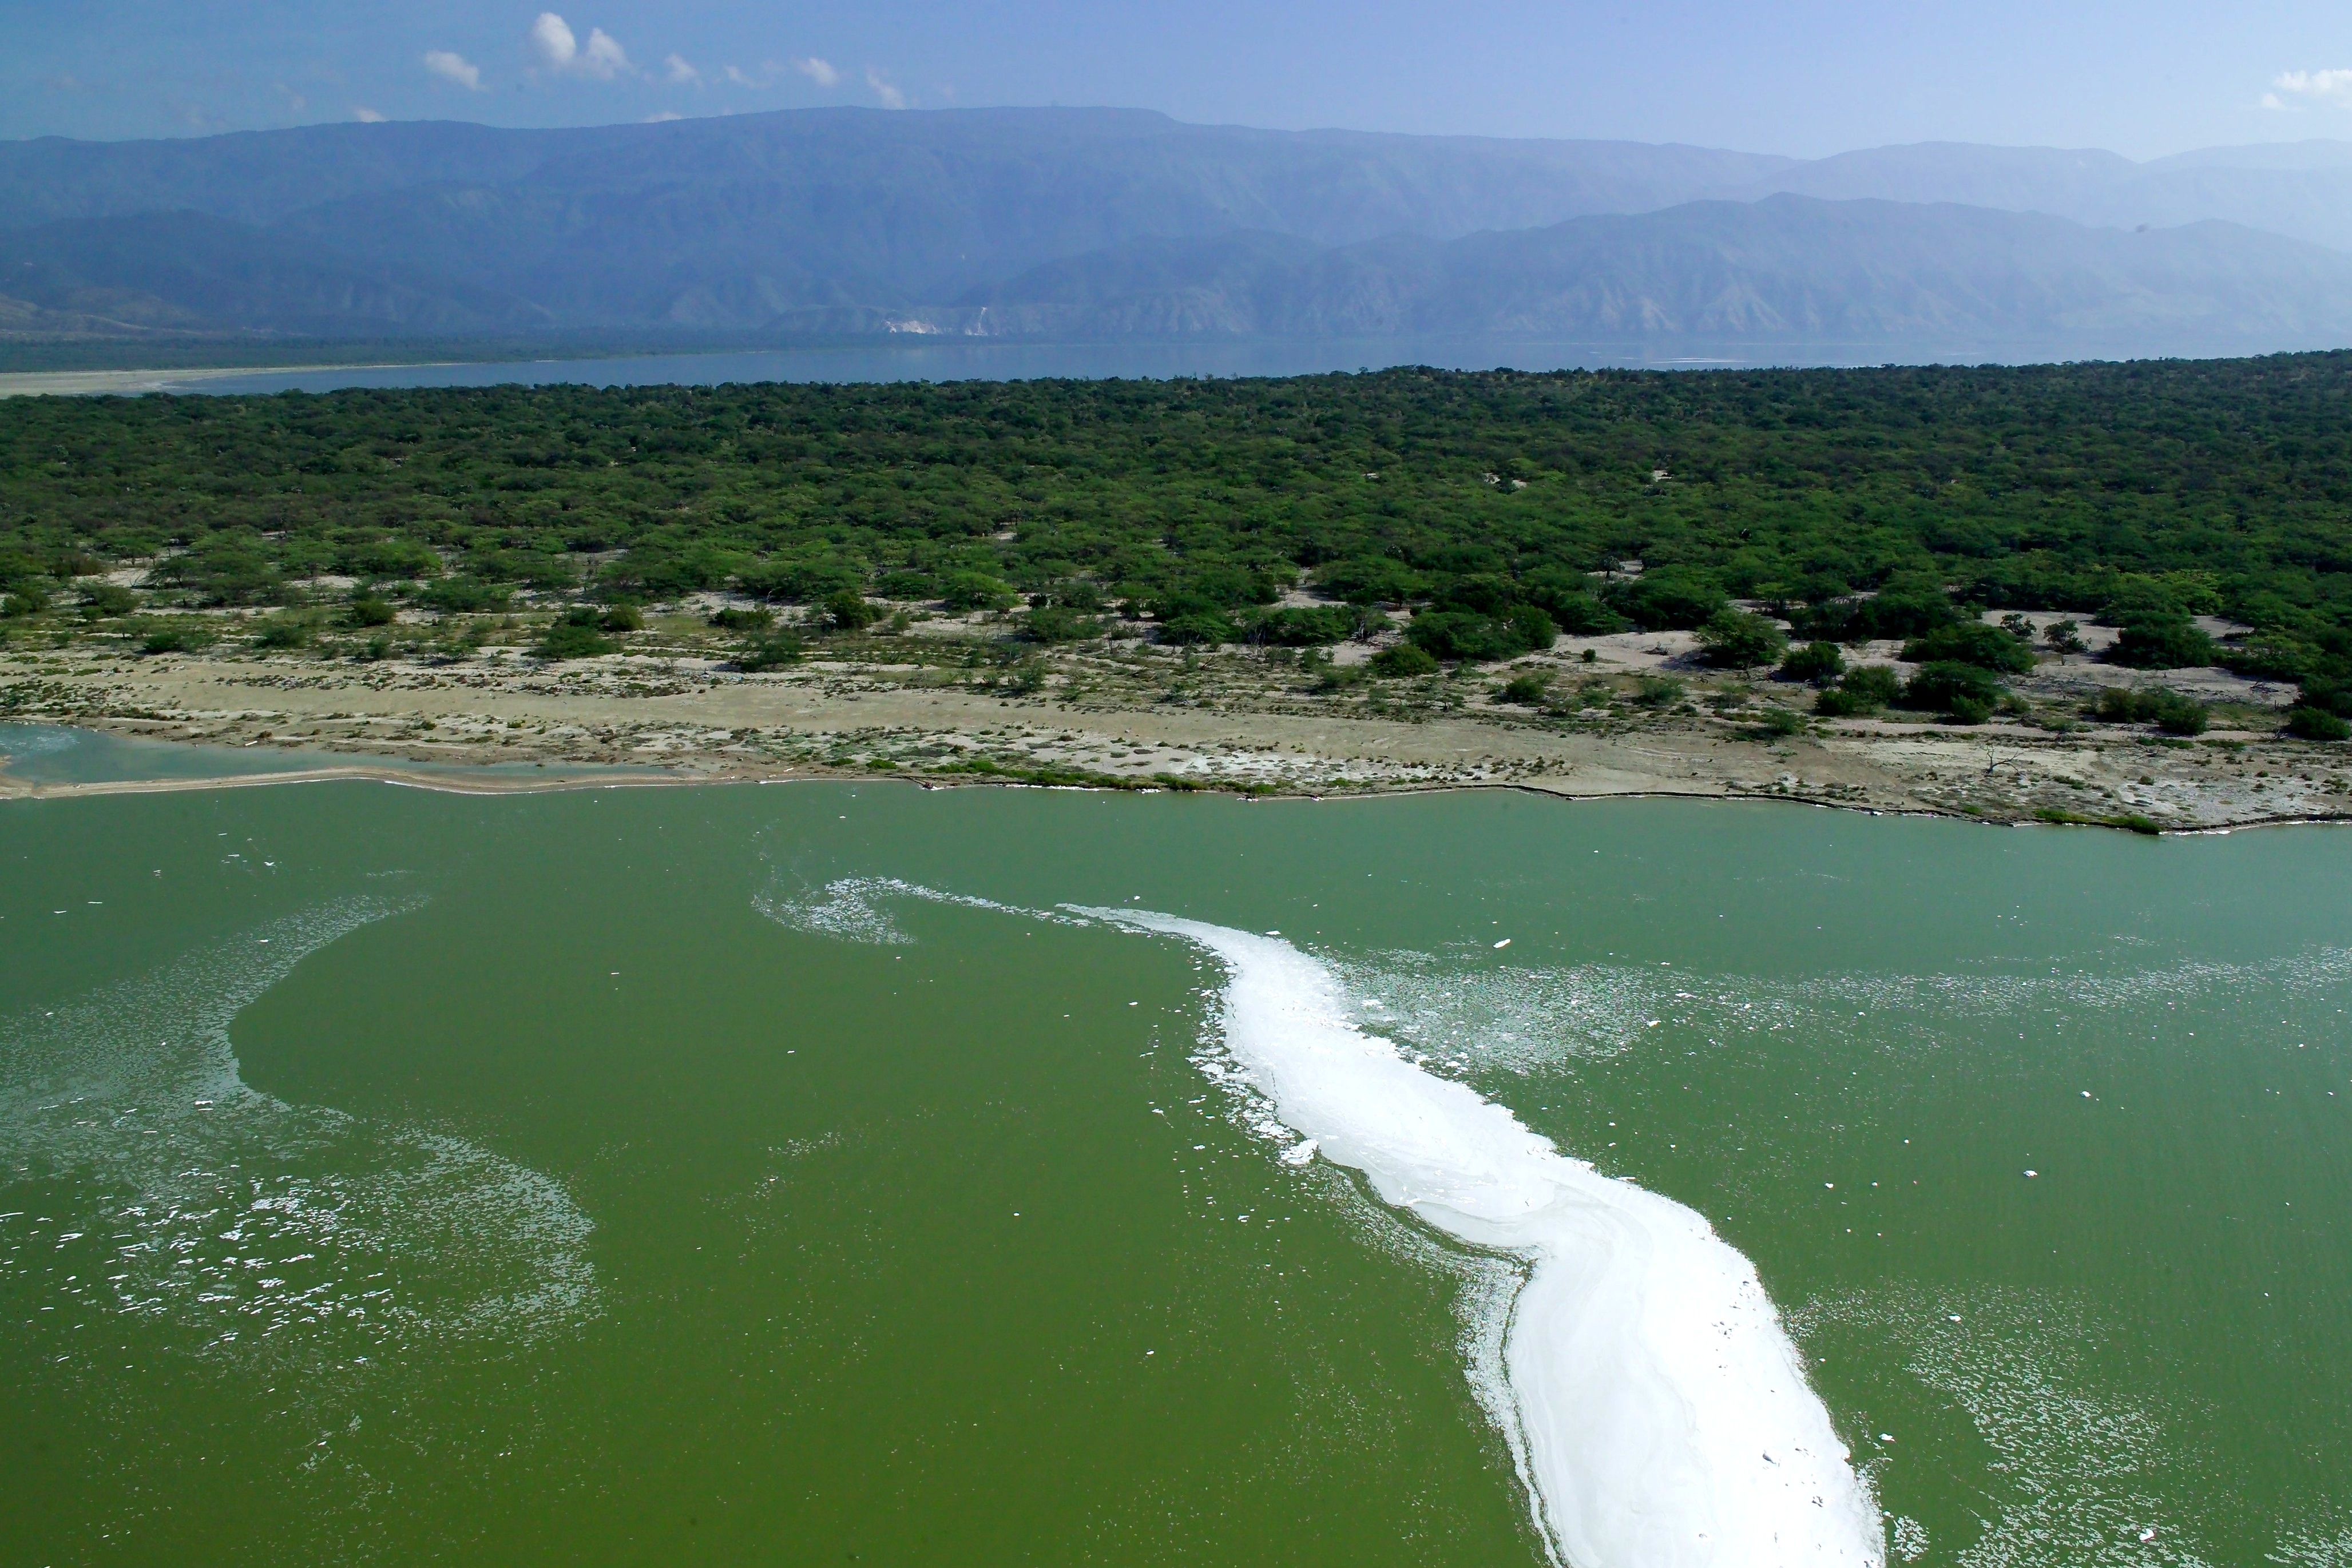 Lago Enriquillo lake in the Dominican Republic is world's largest salt lake with 400 species of the American crocodile.